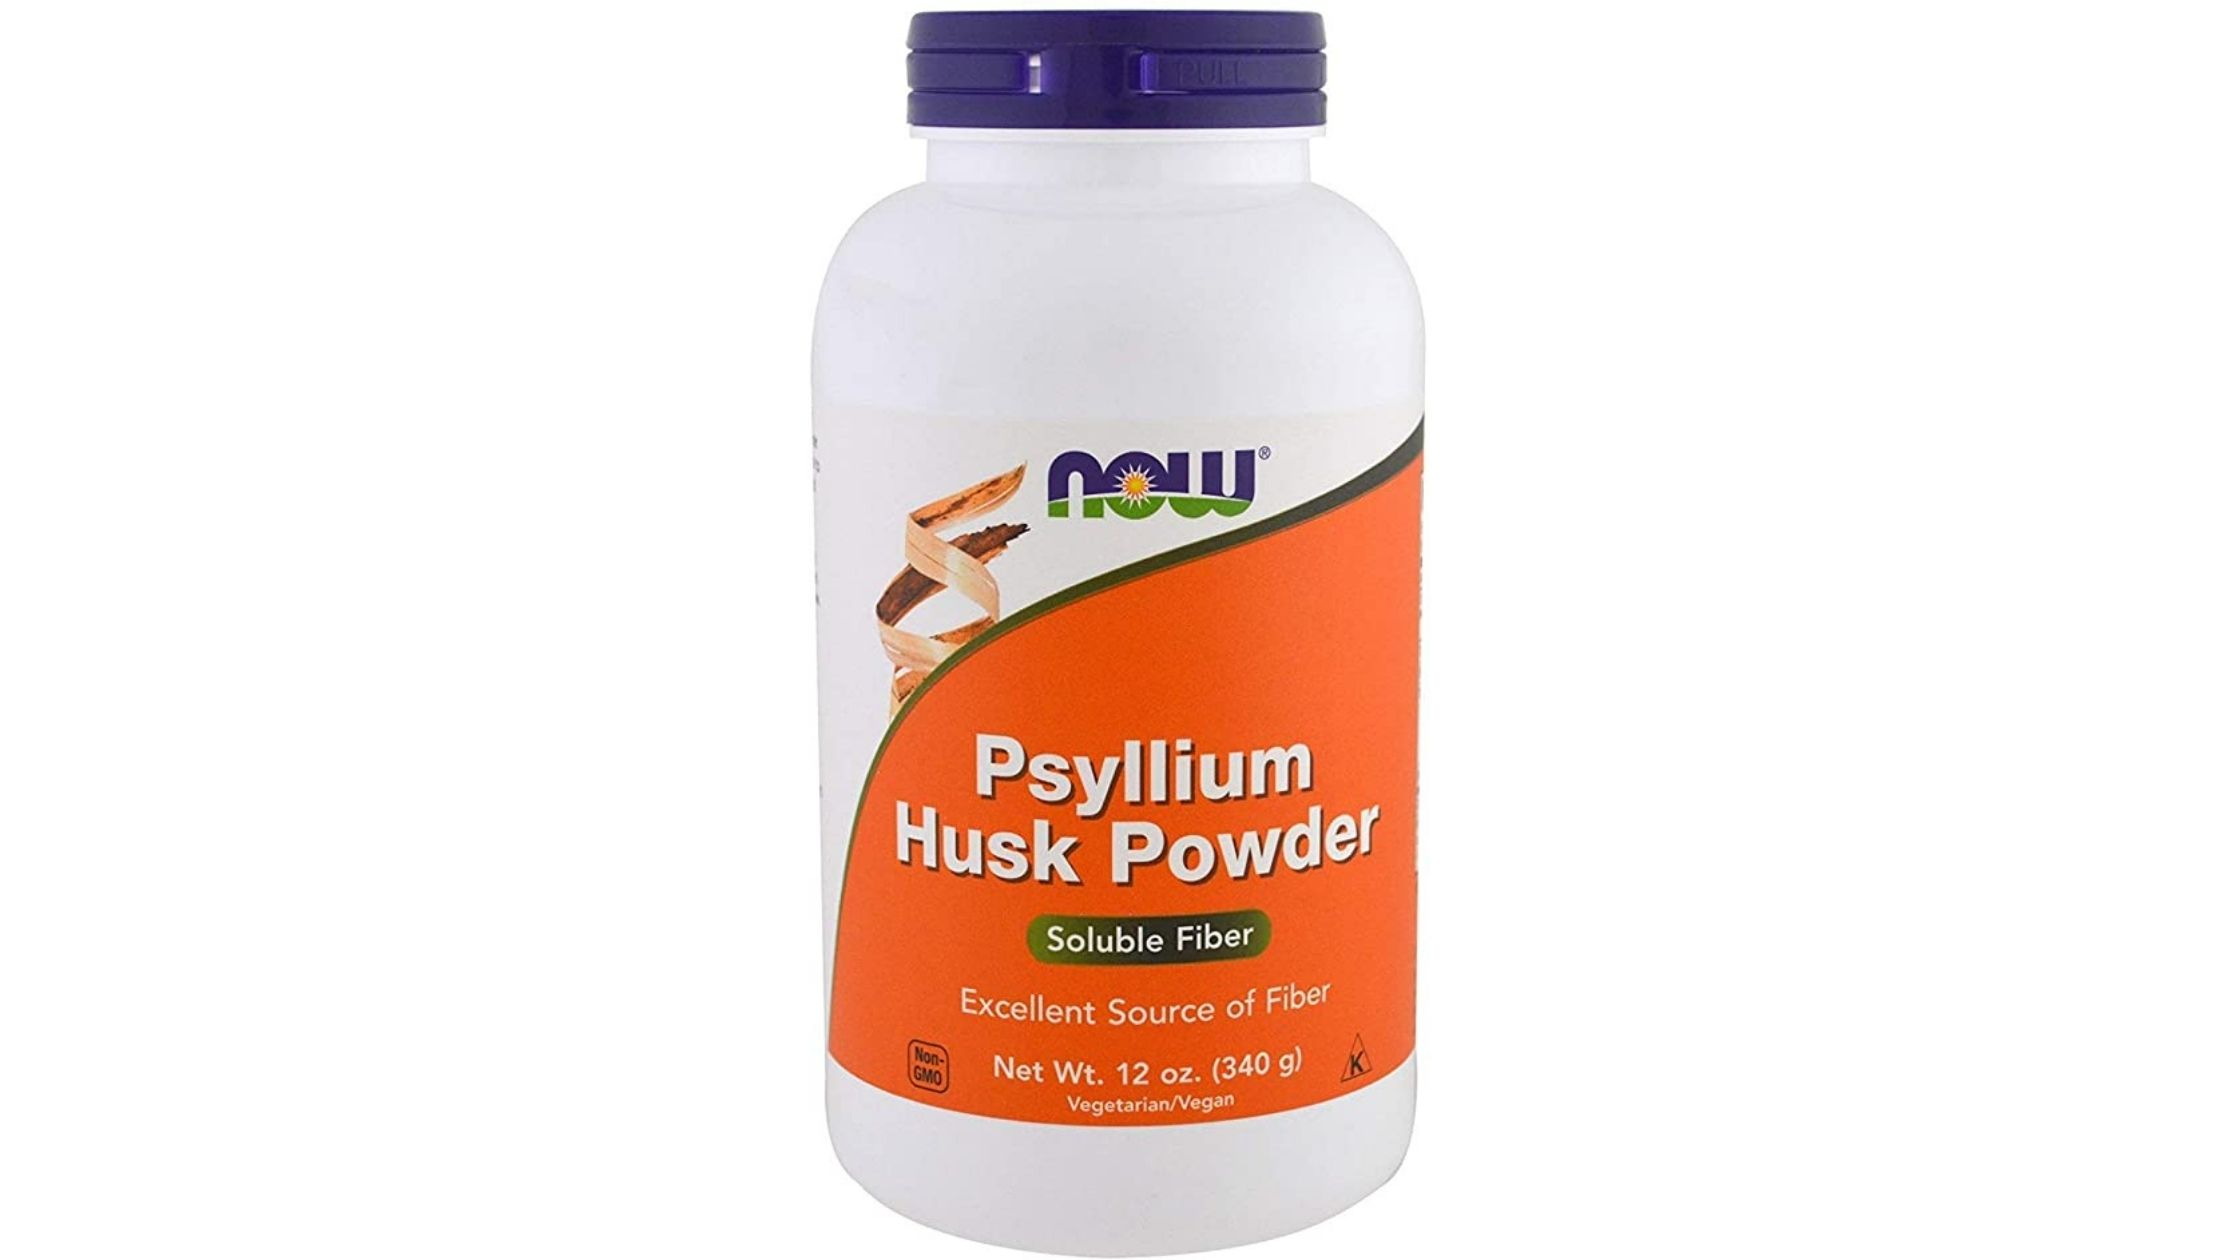 Psyllium Husk Powder by NOW